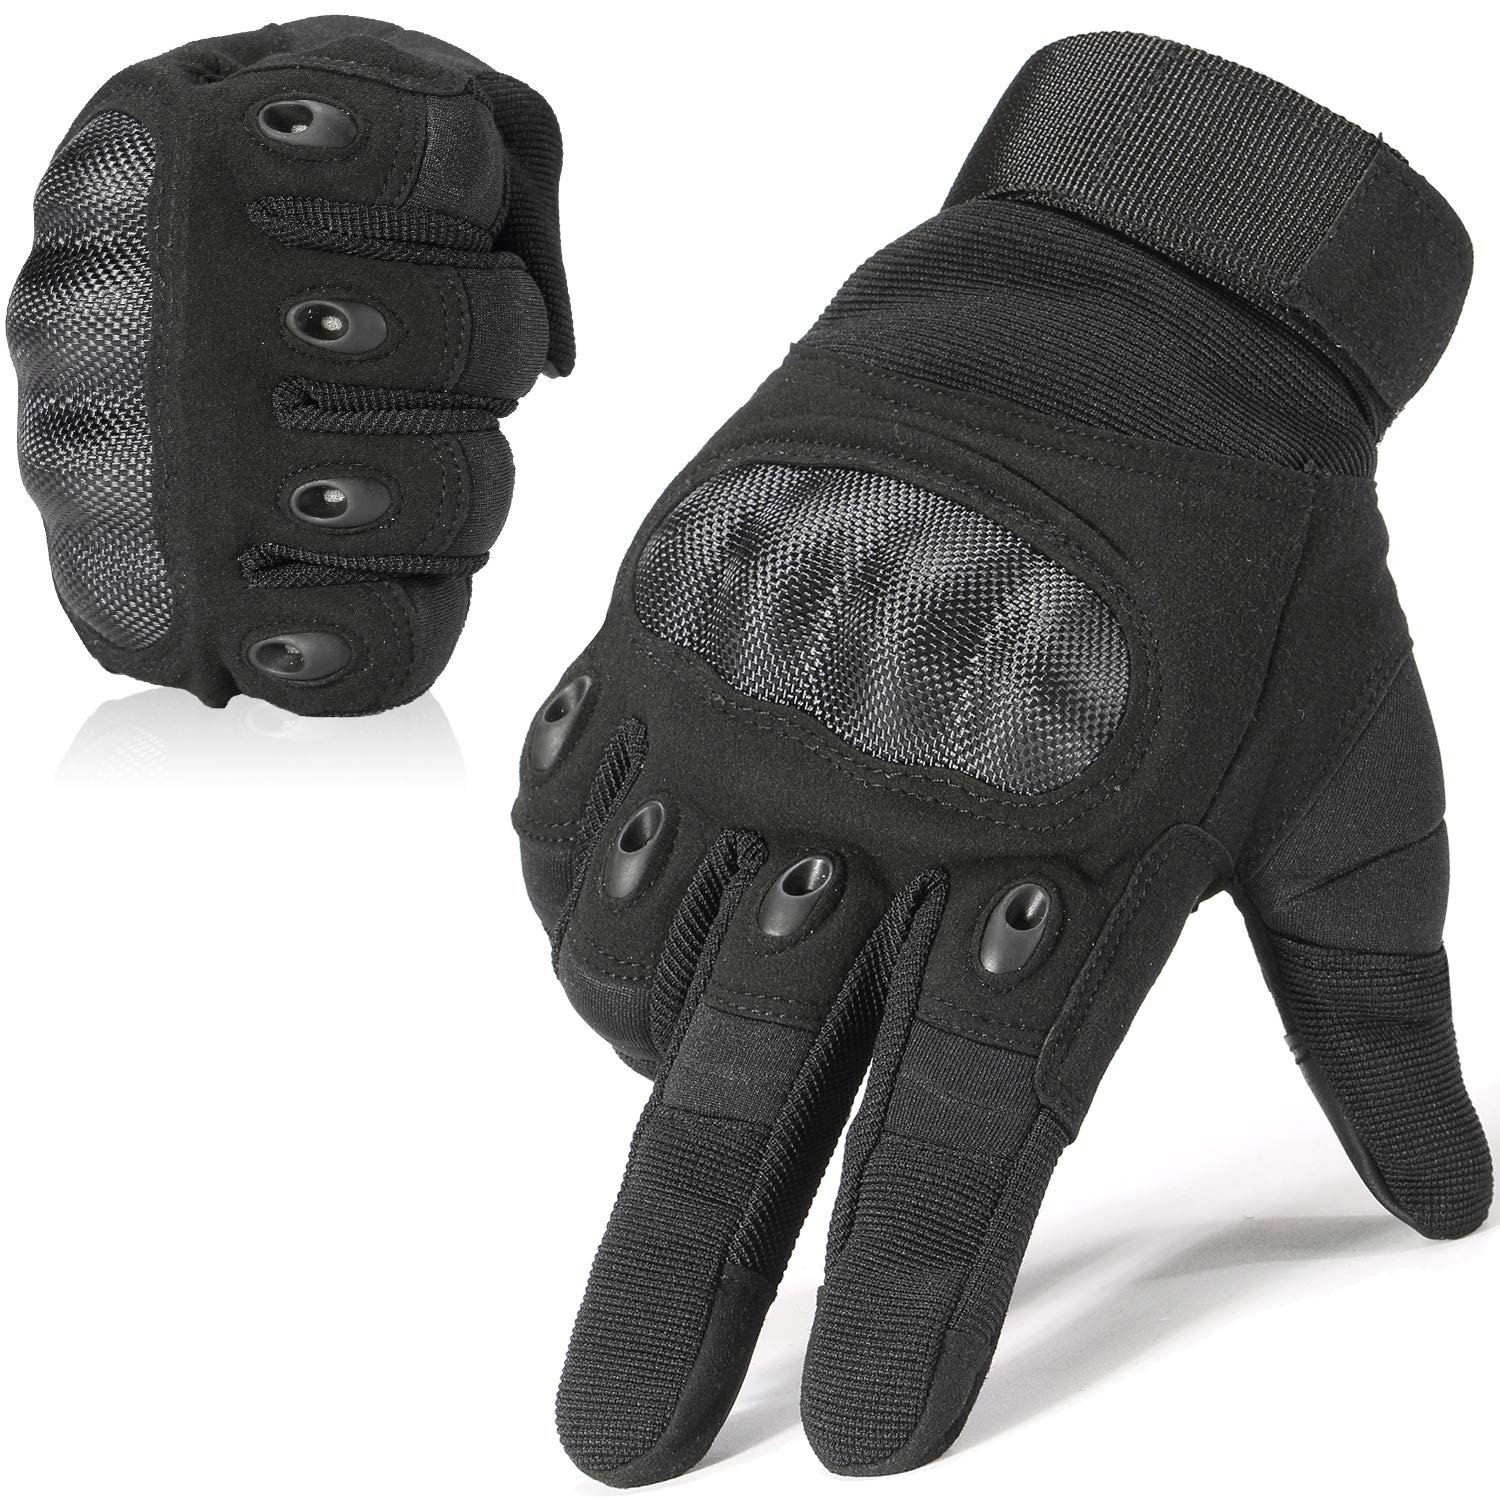 WTACTFUL Army Military Tactical Touchscreen Hard Knuckle Full Finger Gloves